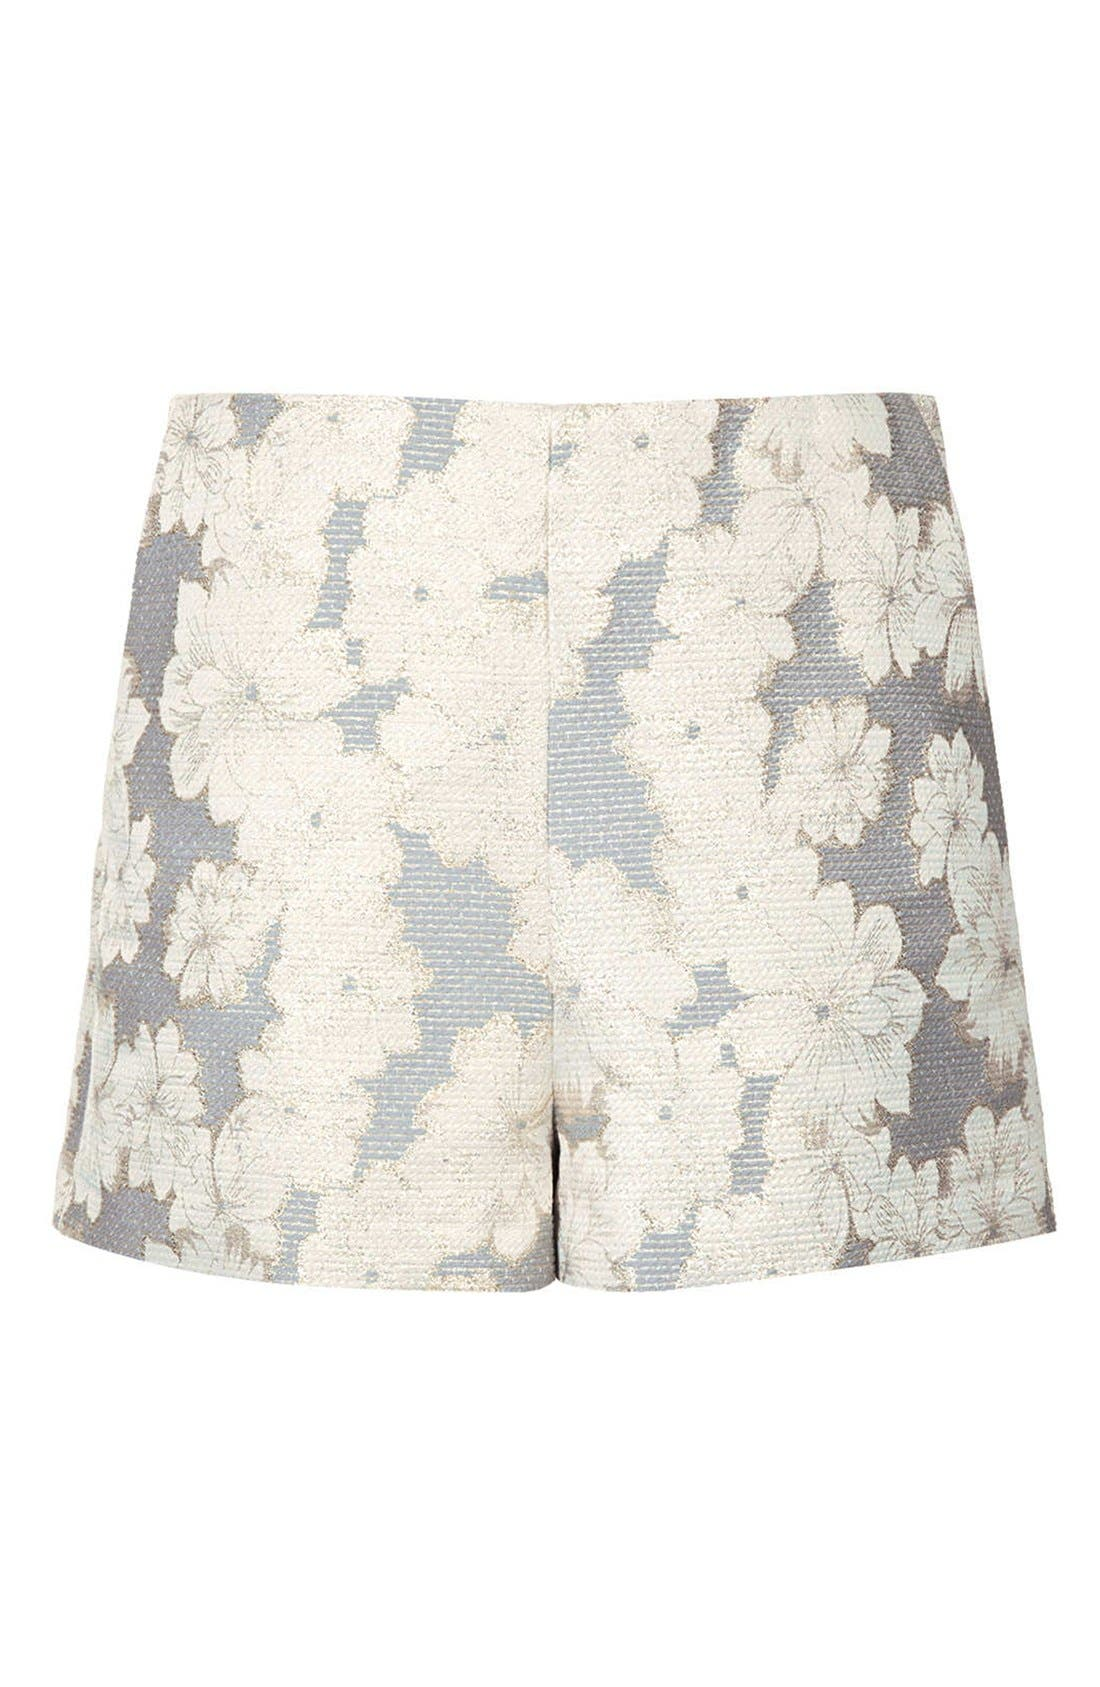 Alternate Image 3  - Topshop Metallic Floral Jacquard High Rise Shorts